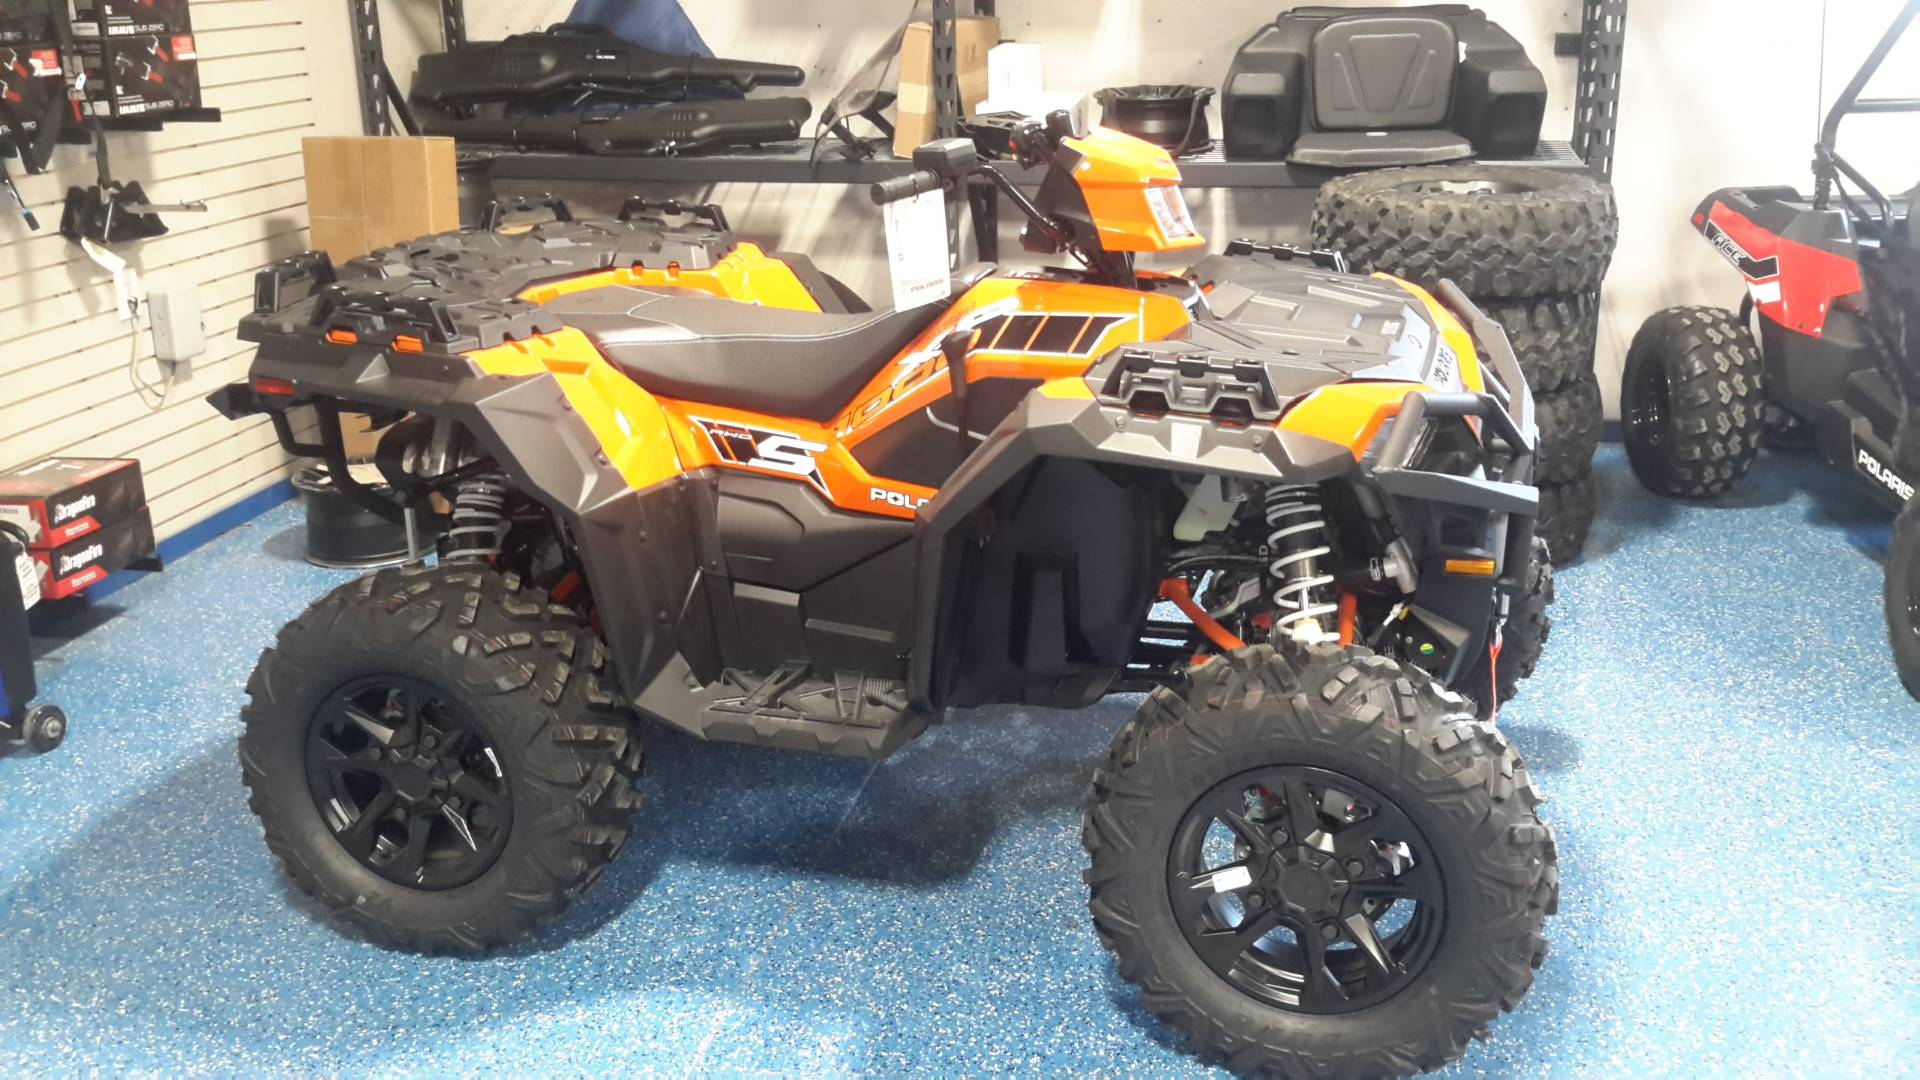 2020 Polaris Sportsman XP 1000 S in Tecumseh, Michigan - Photo 1